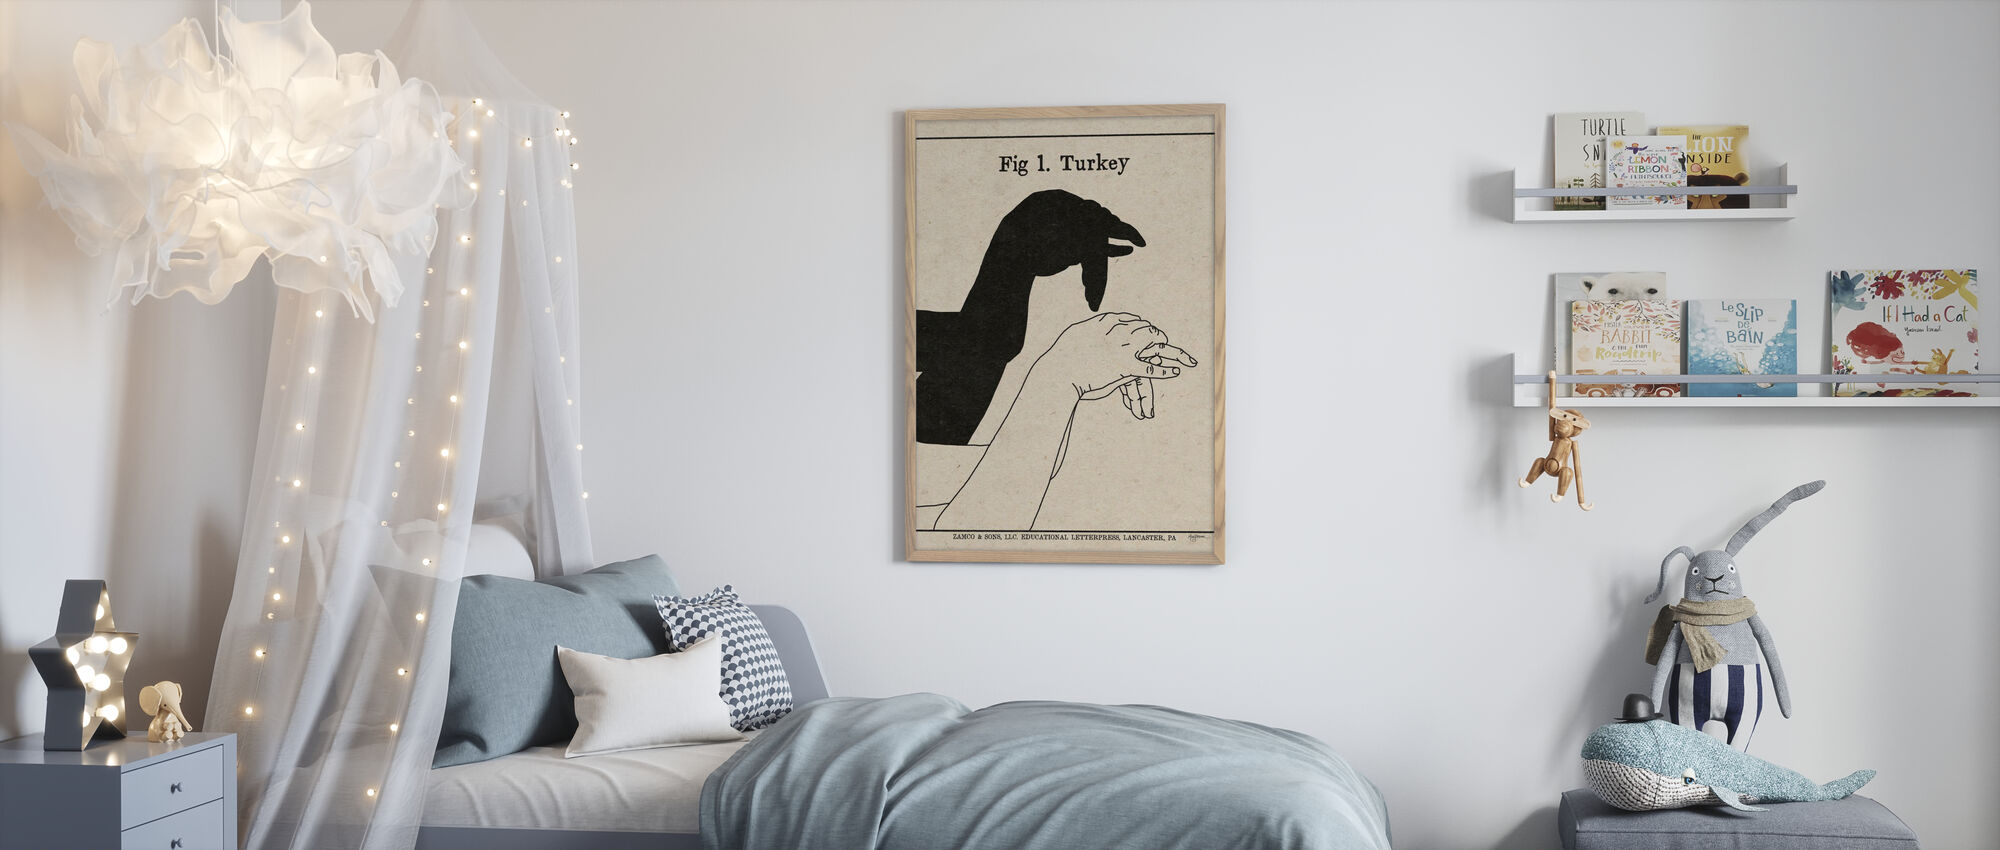 The Art of Shadows - Turkey - Poster - Kids Room